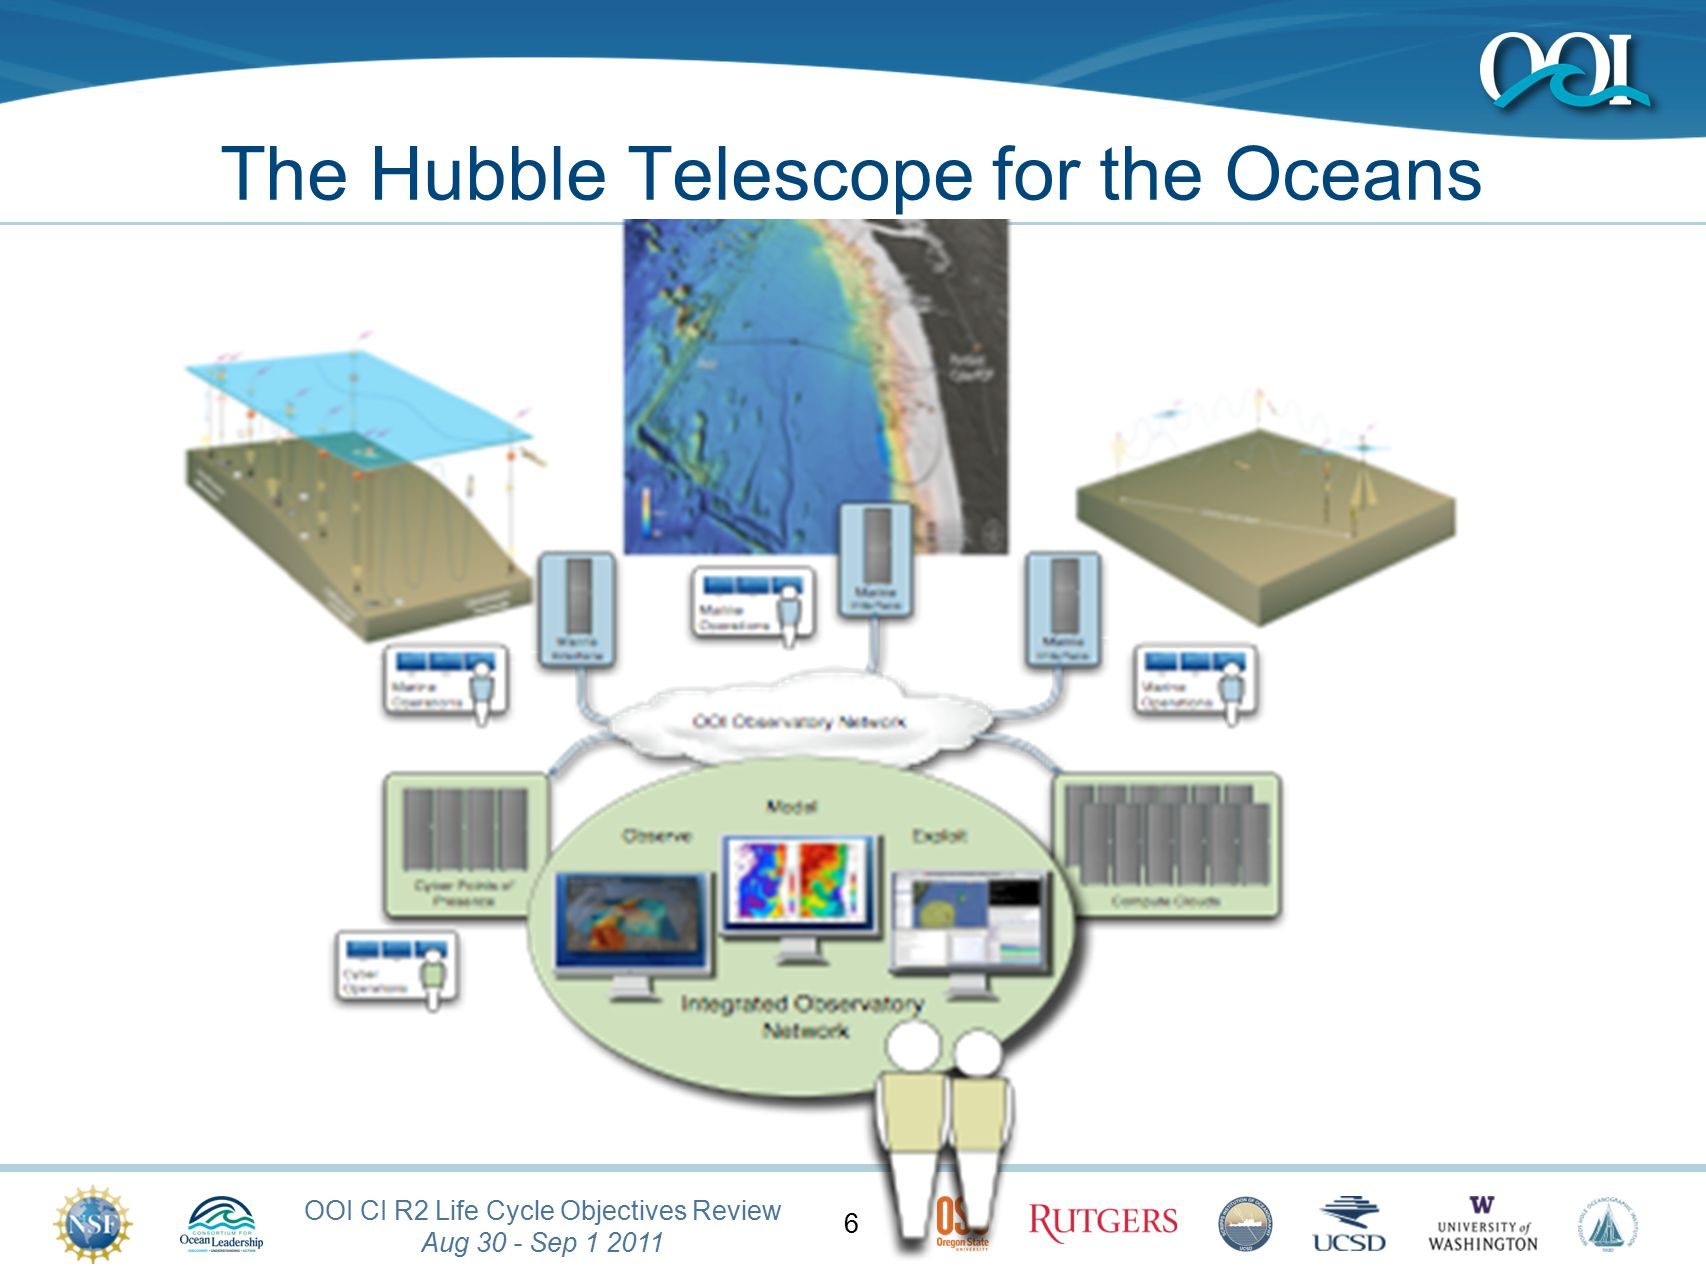 OOI CI Release 2 Kickoff May 2, 2011 47 Relationship with IOOS, NEPTUNE and others observatories External Observatory Integration subsystem within the OOI Specifically focused on providing bi-directional integration interfaces to IOOS, NEPTUNE-Canada and WMO (aka GTS) Integration continues on into the Operations and Maintenance phase of the OOI as a user/observatory on boarding capability Provide the training and support to communities that wish to integrate with OOI